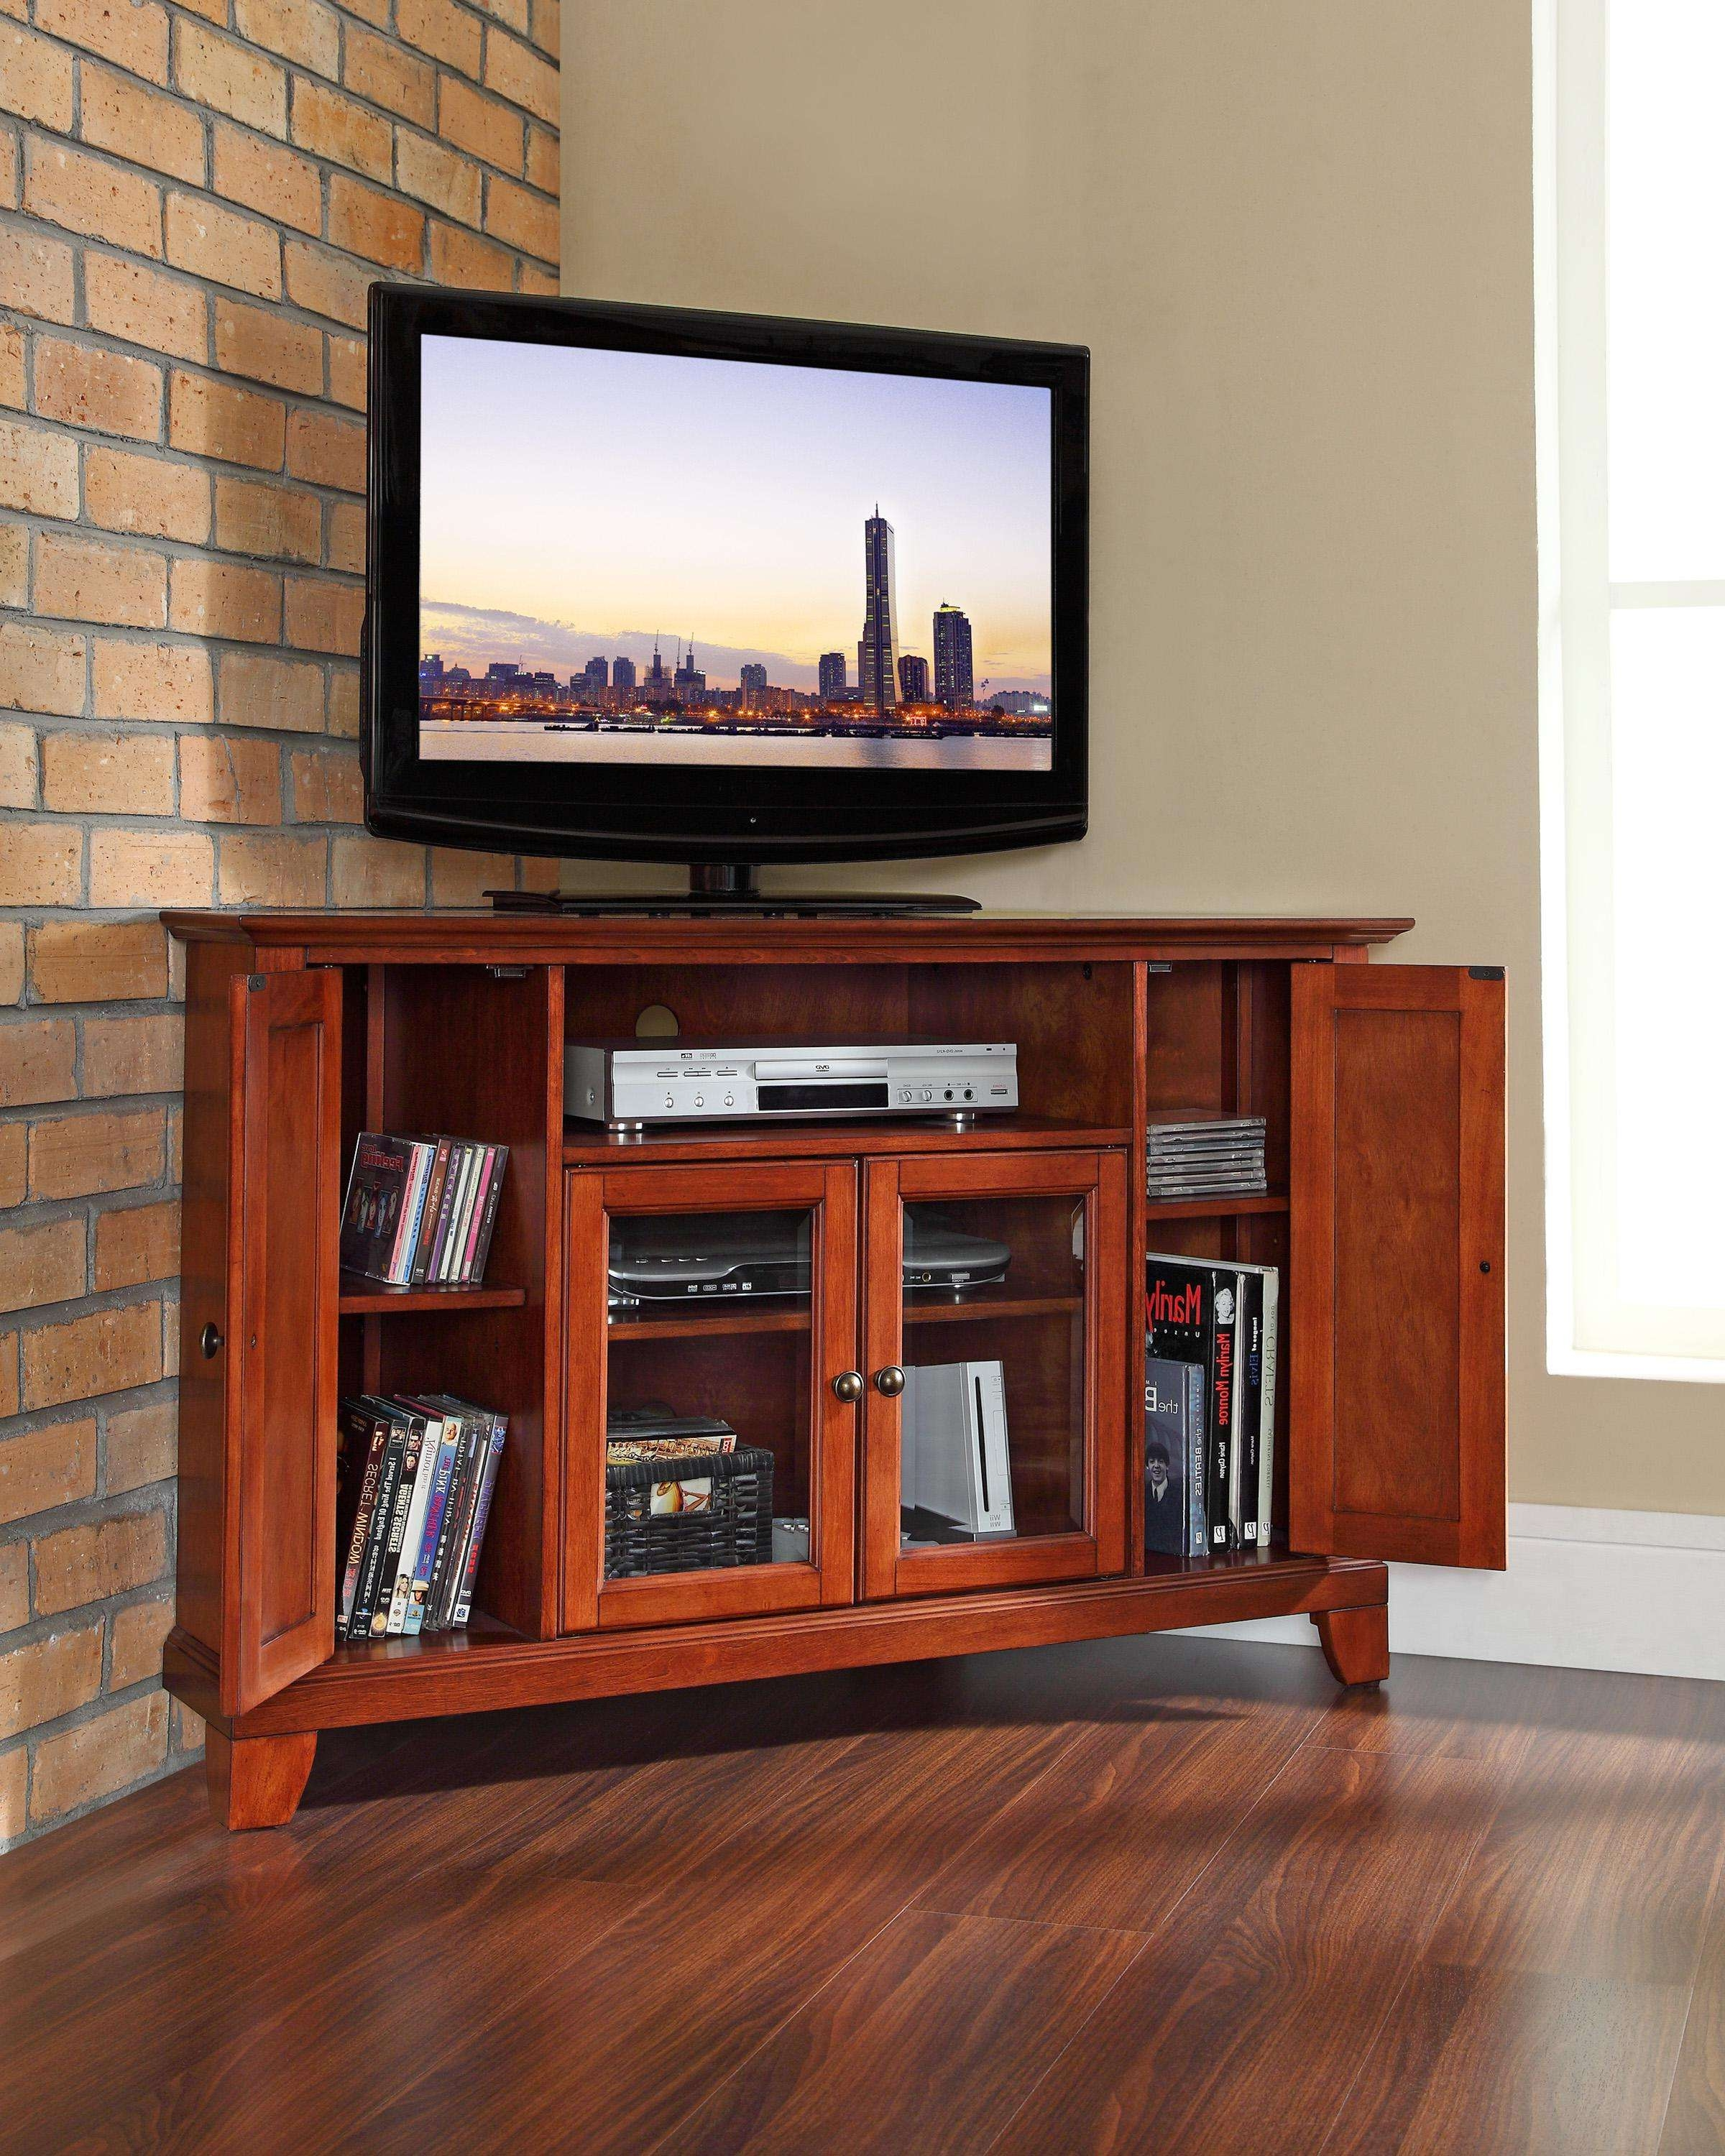 Console Tables : Whalen Tv Stand Flat Screen Walmart Console Mount In Flat Screen Tv Stands Corner Units (View 5 of 20)